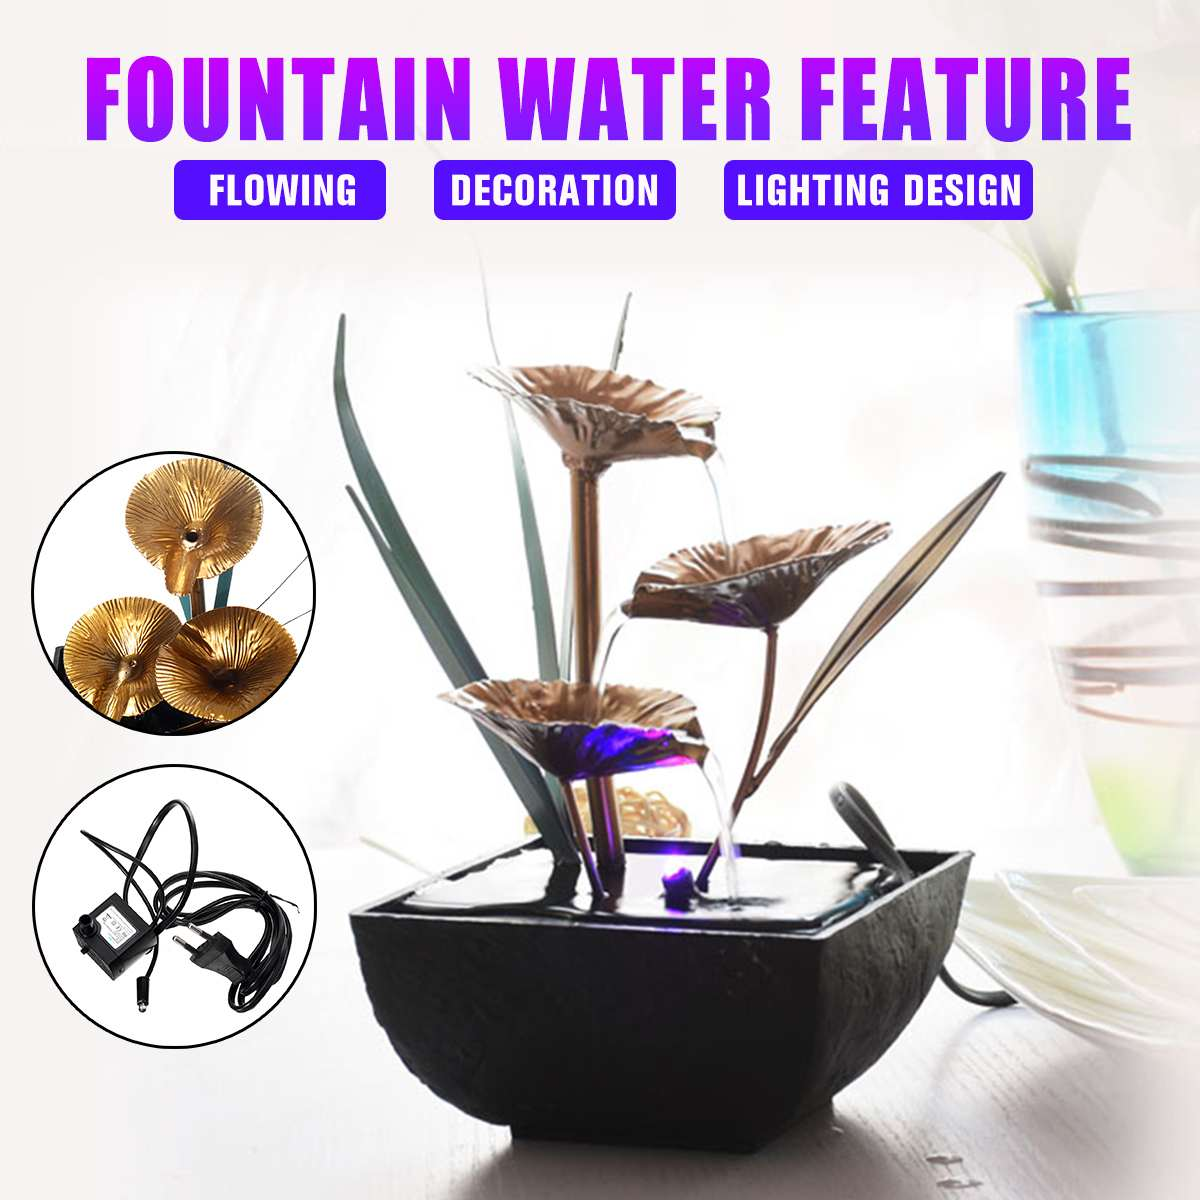 <font><b>Decorative</b></font> Indoor <font><b>Water</b></font> <font><b>Fountains</b></font> Lotus <font><b>Fountain</b></font> Resin Crafts Gifts Feng Shui Wheel Desktop <font><b>Water</b></font> <font><b>Fountain</b></font> for <font><b>Home</b></font> Office Decor image